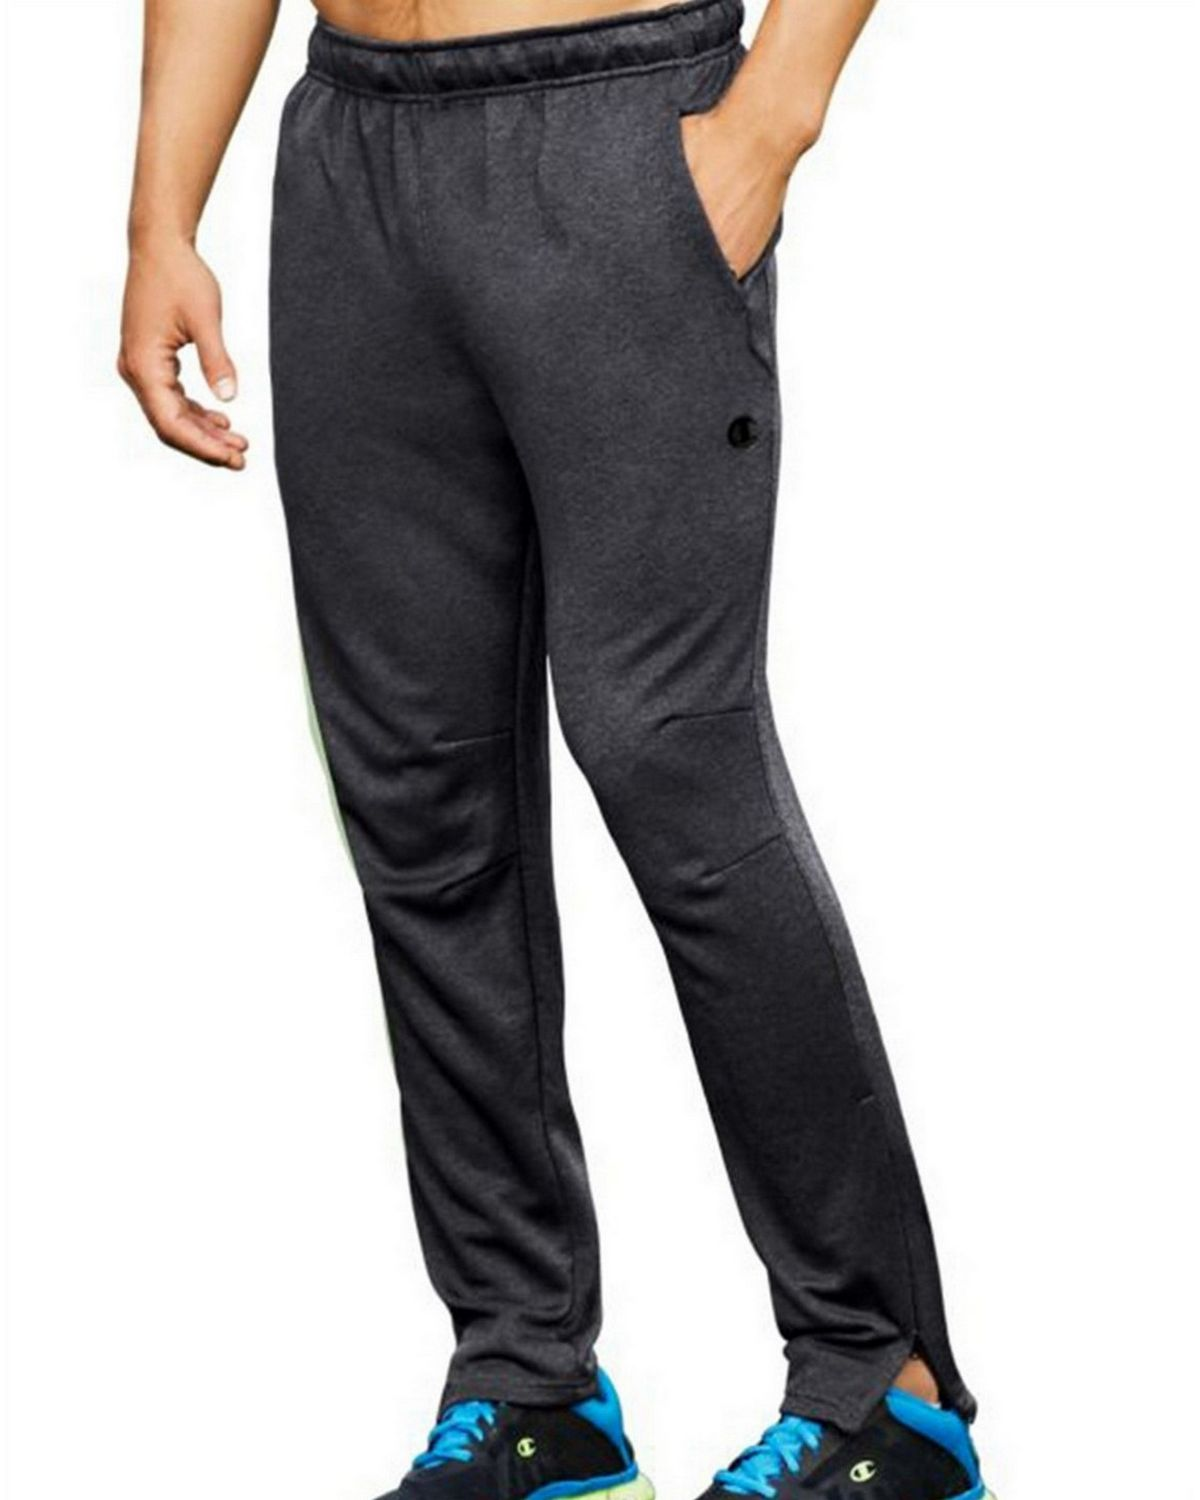 Champion P0819 Mens Cross Train Pants - Granite Heather - S P0819